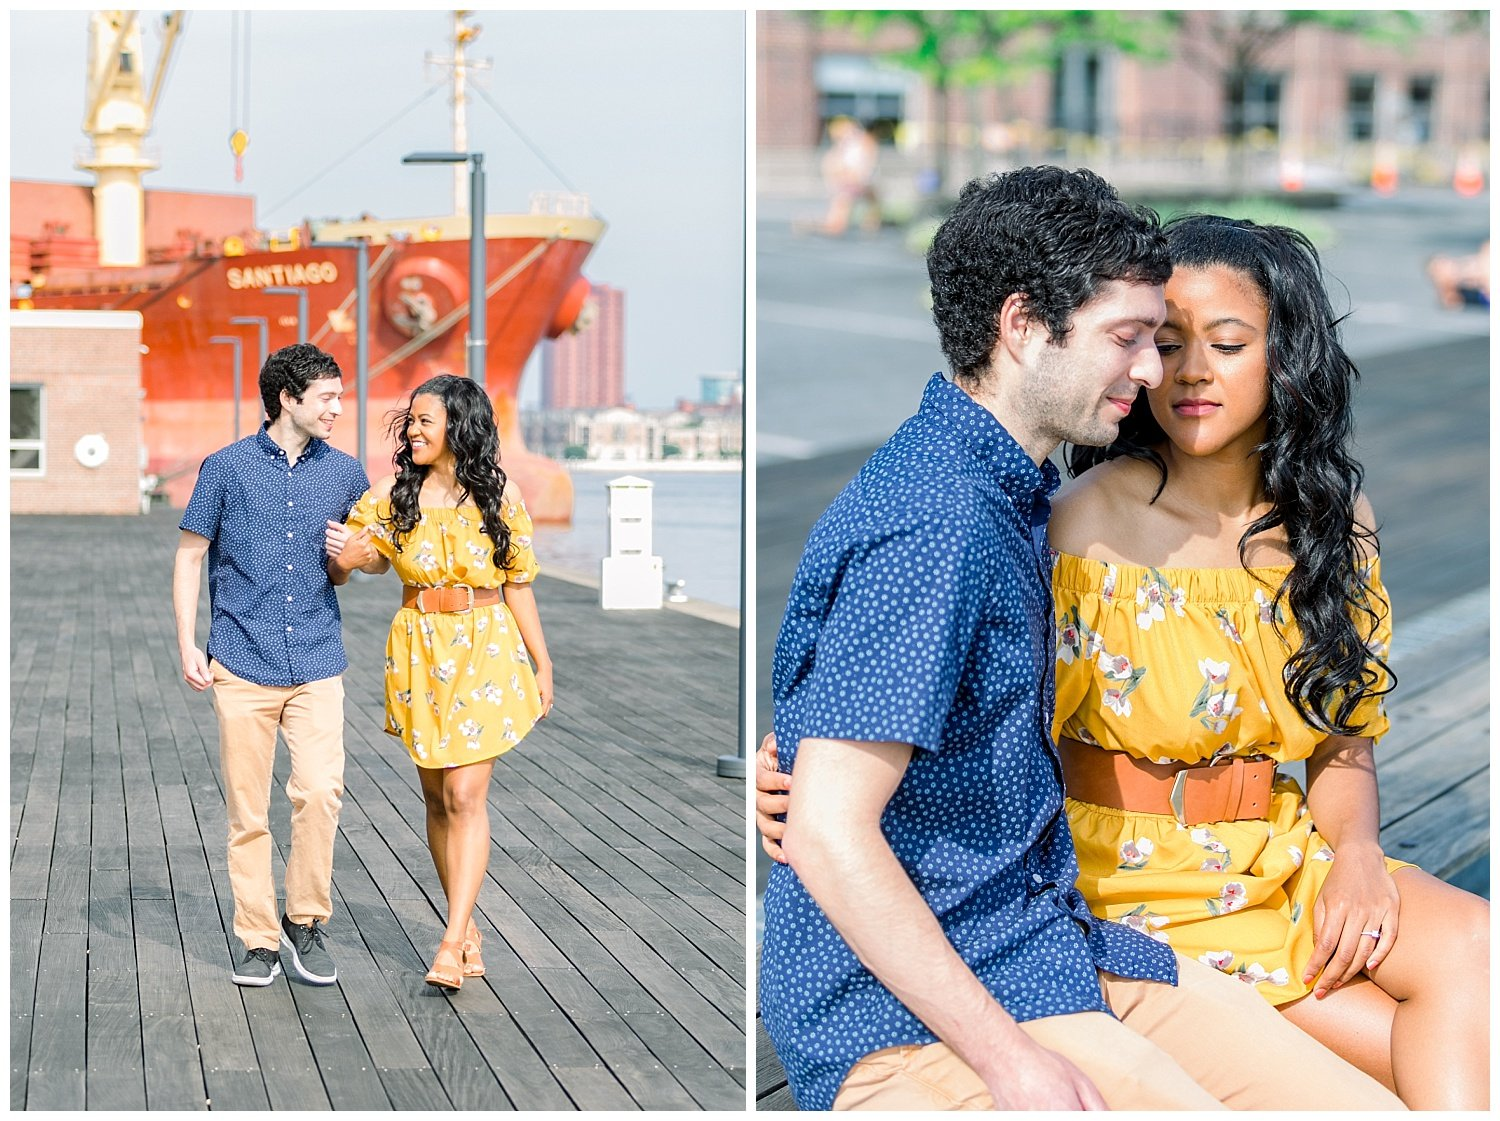 baltimore,under armour,federal hill,engagement, Baltimore Engagement Session- Ana & Eric, Fine Art Wedding Photographer Baltimore MD, Fine Art Wedding Photographer Baltimore MD